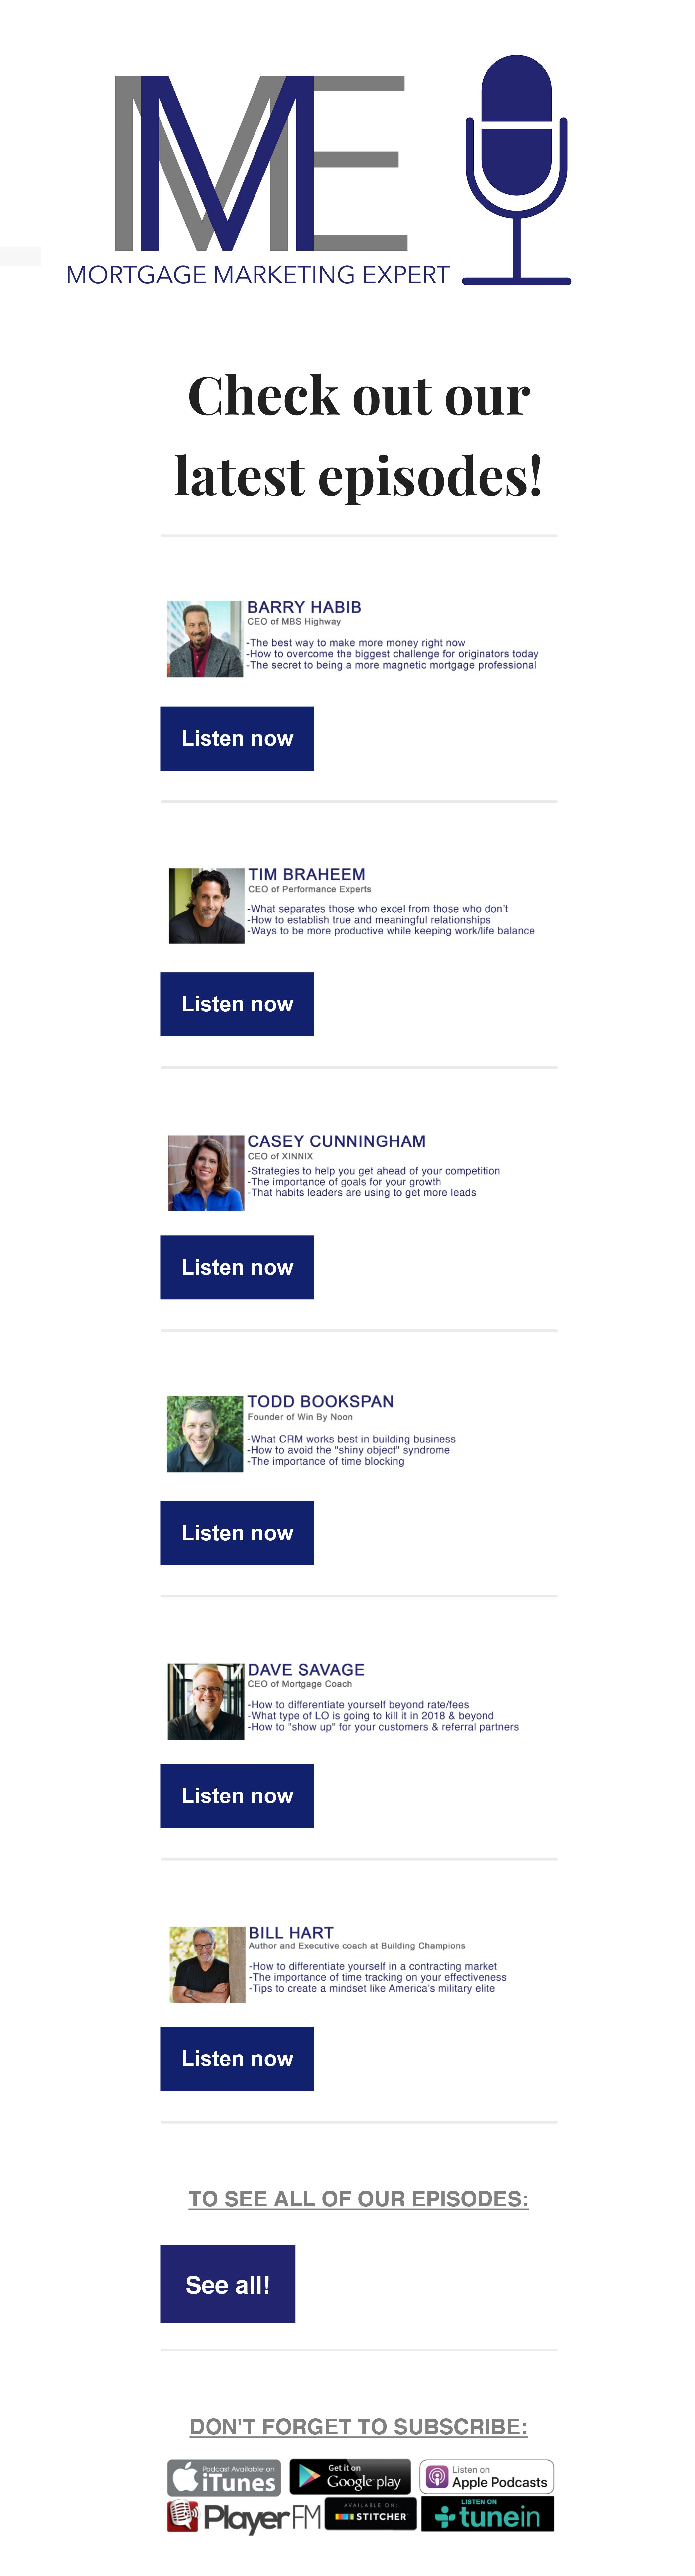 Check Out Our List Of Episodes Mortgage Mortgagemarketing Podcast Loanofficer Mortgageexpert Mortgagebroker Loanori With Images Mortgage Marketing Marketing Mortgage